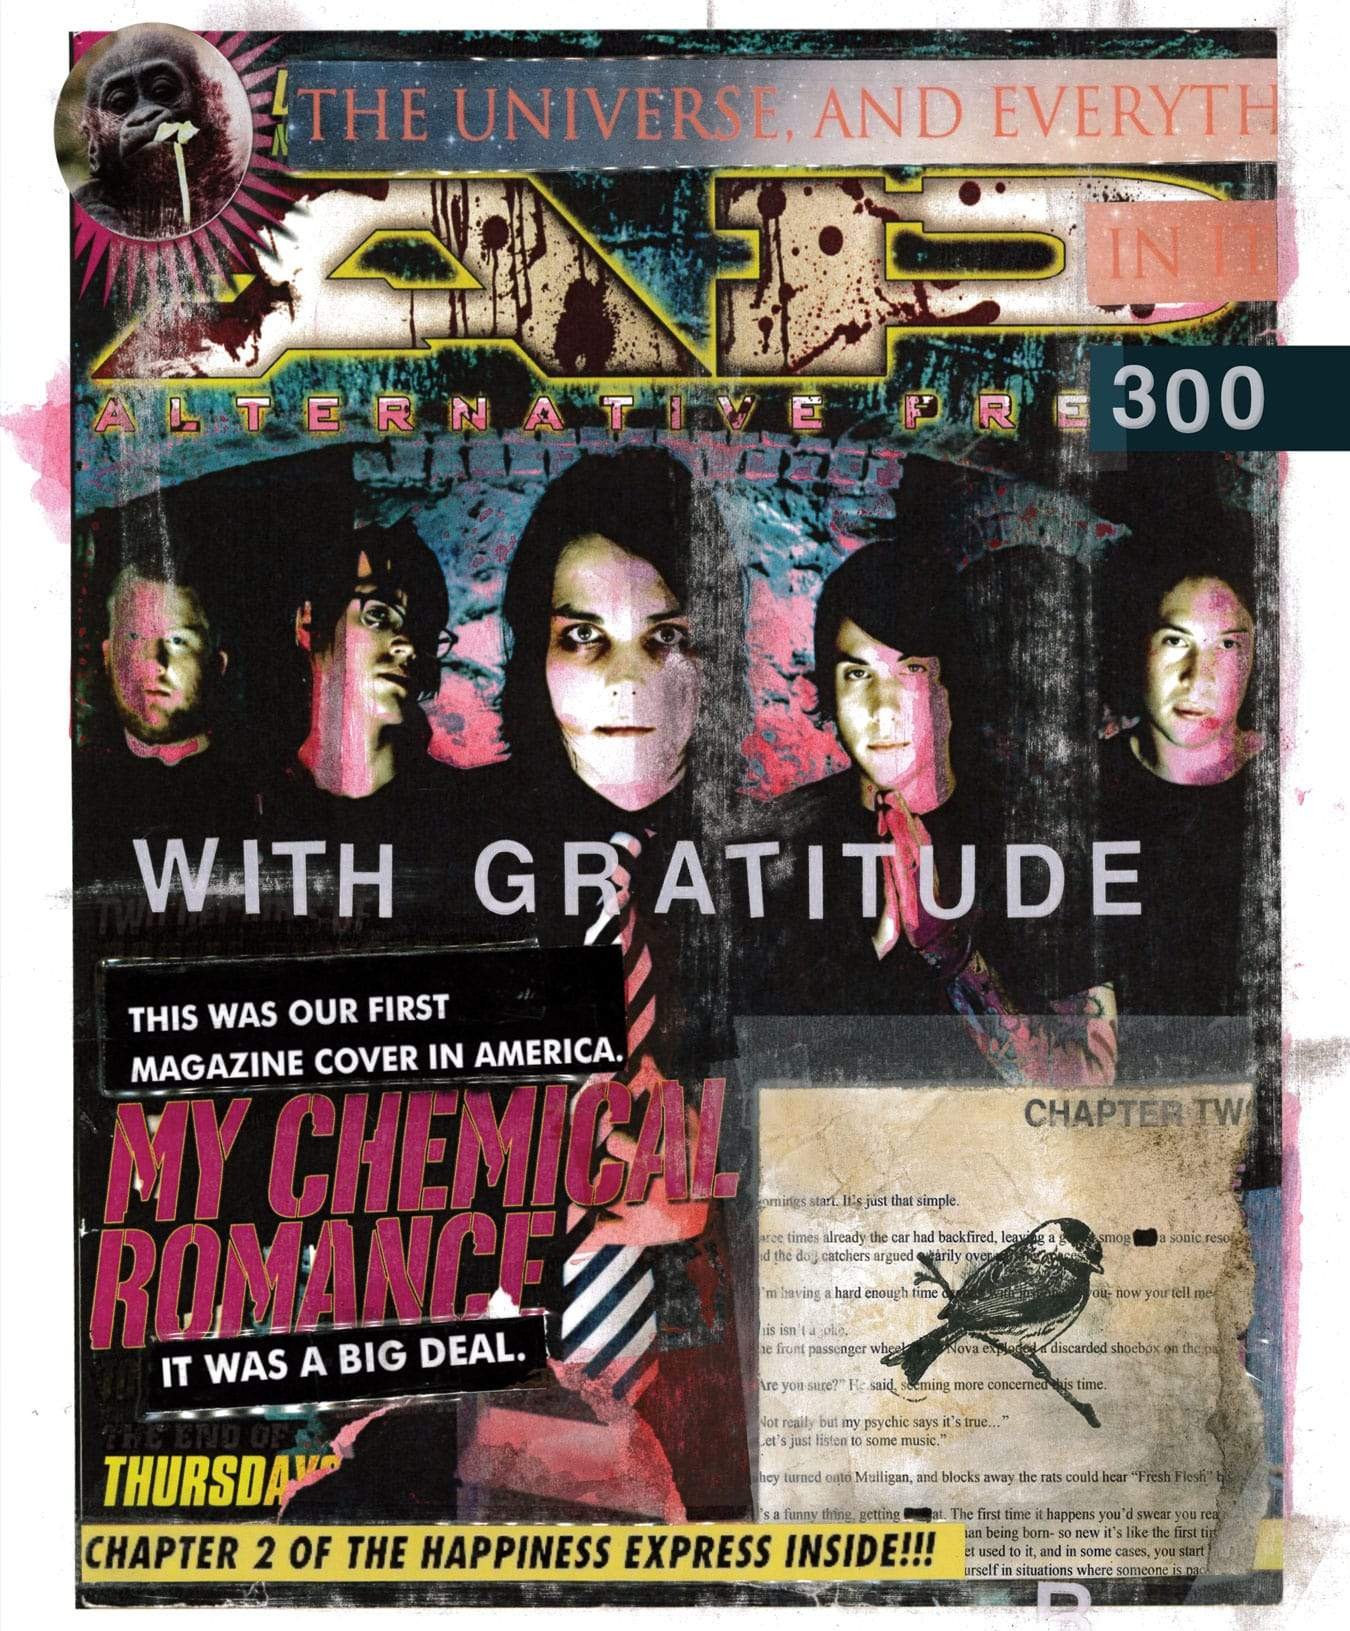 My Chemical Romance - Alternative Press Magazine Issue 300 Version 2